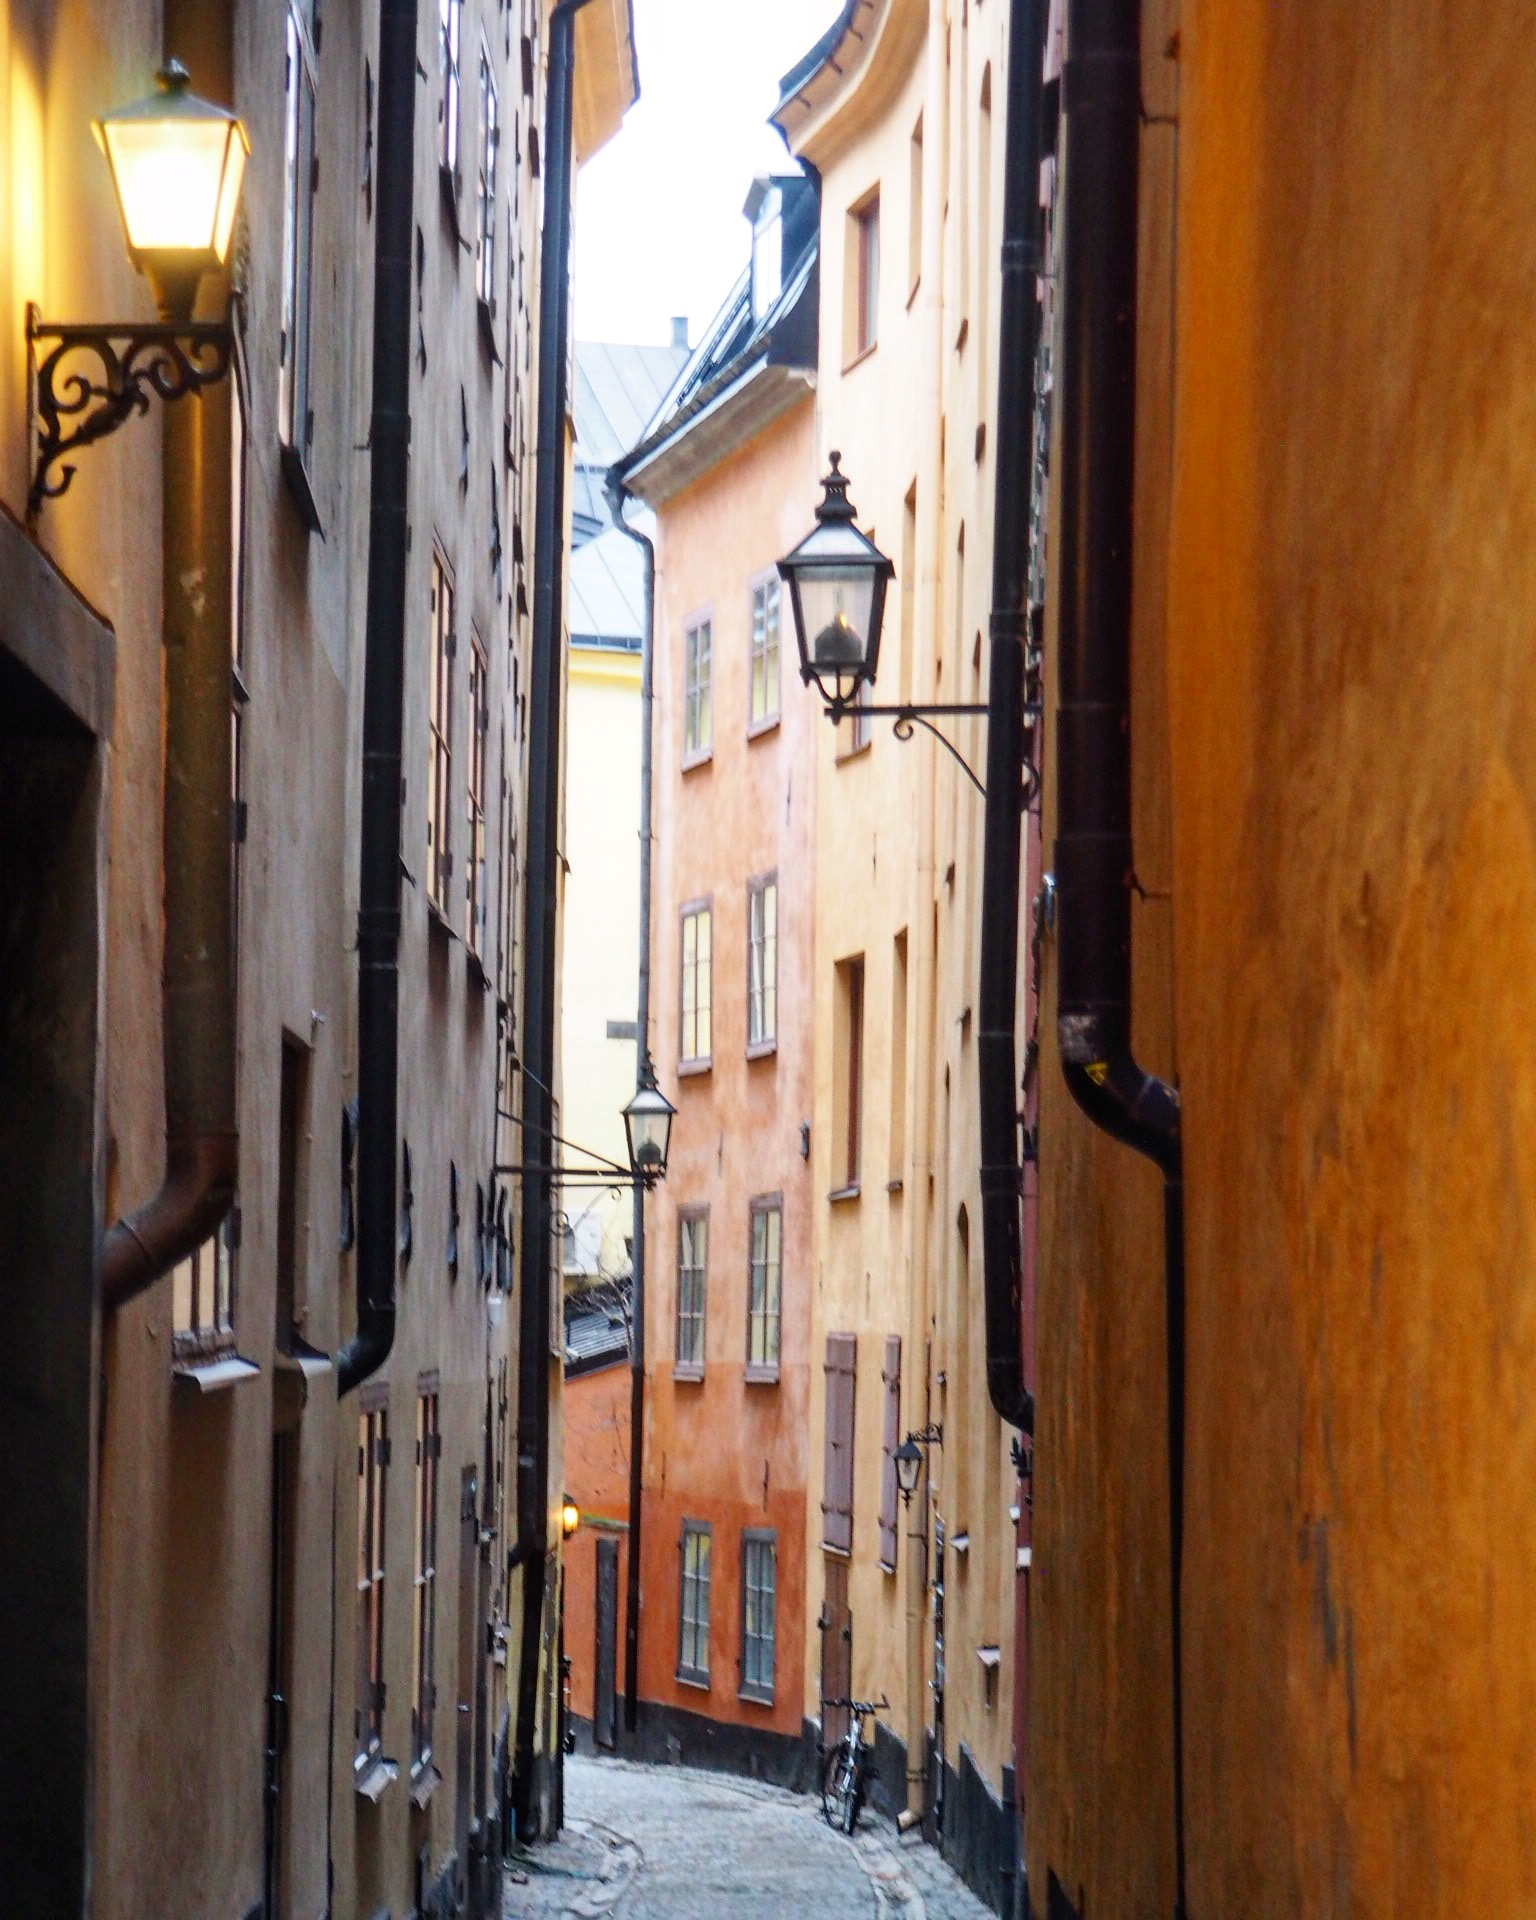 A Single Bicycle in Gamla Stan; Sweden